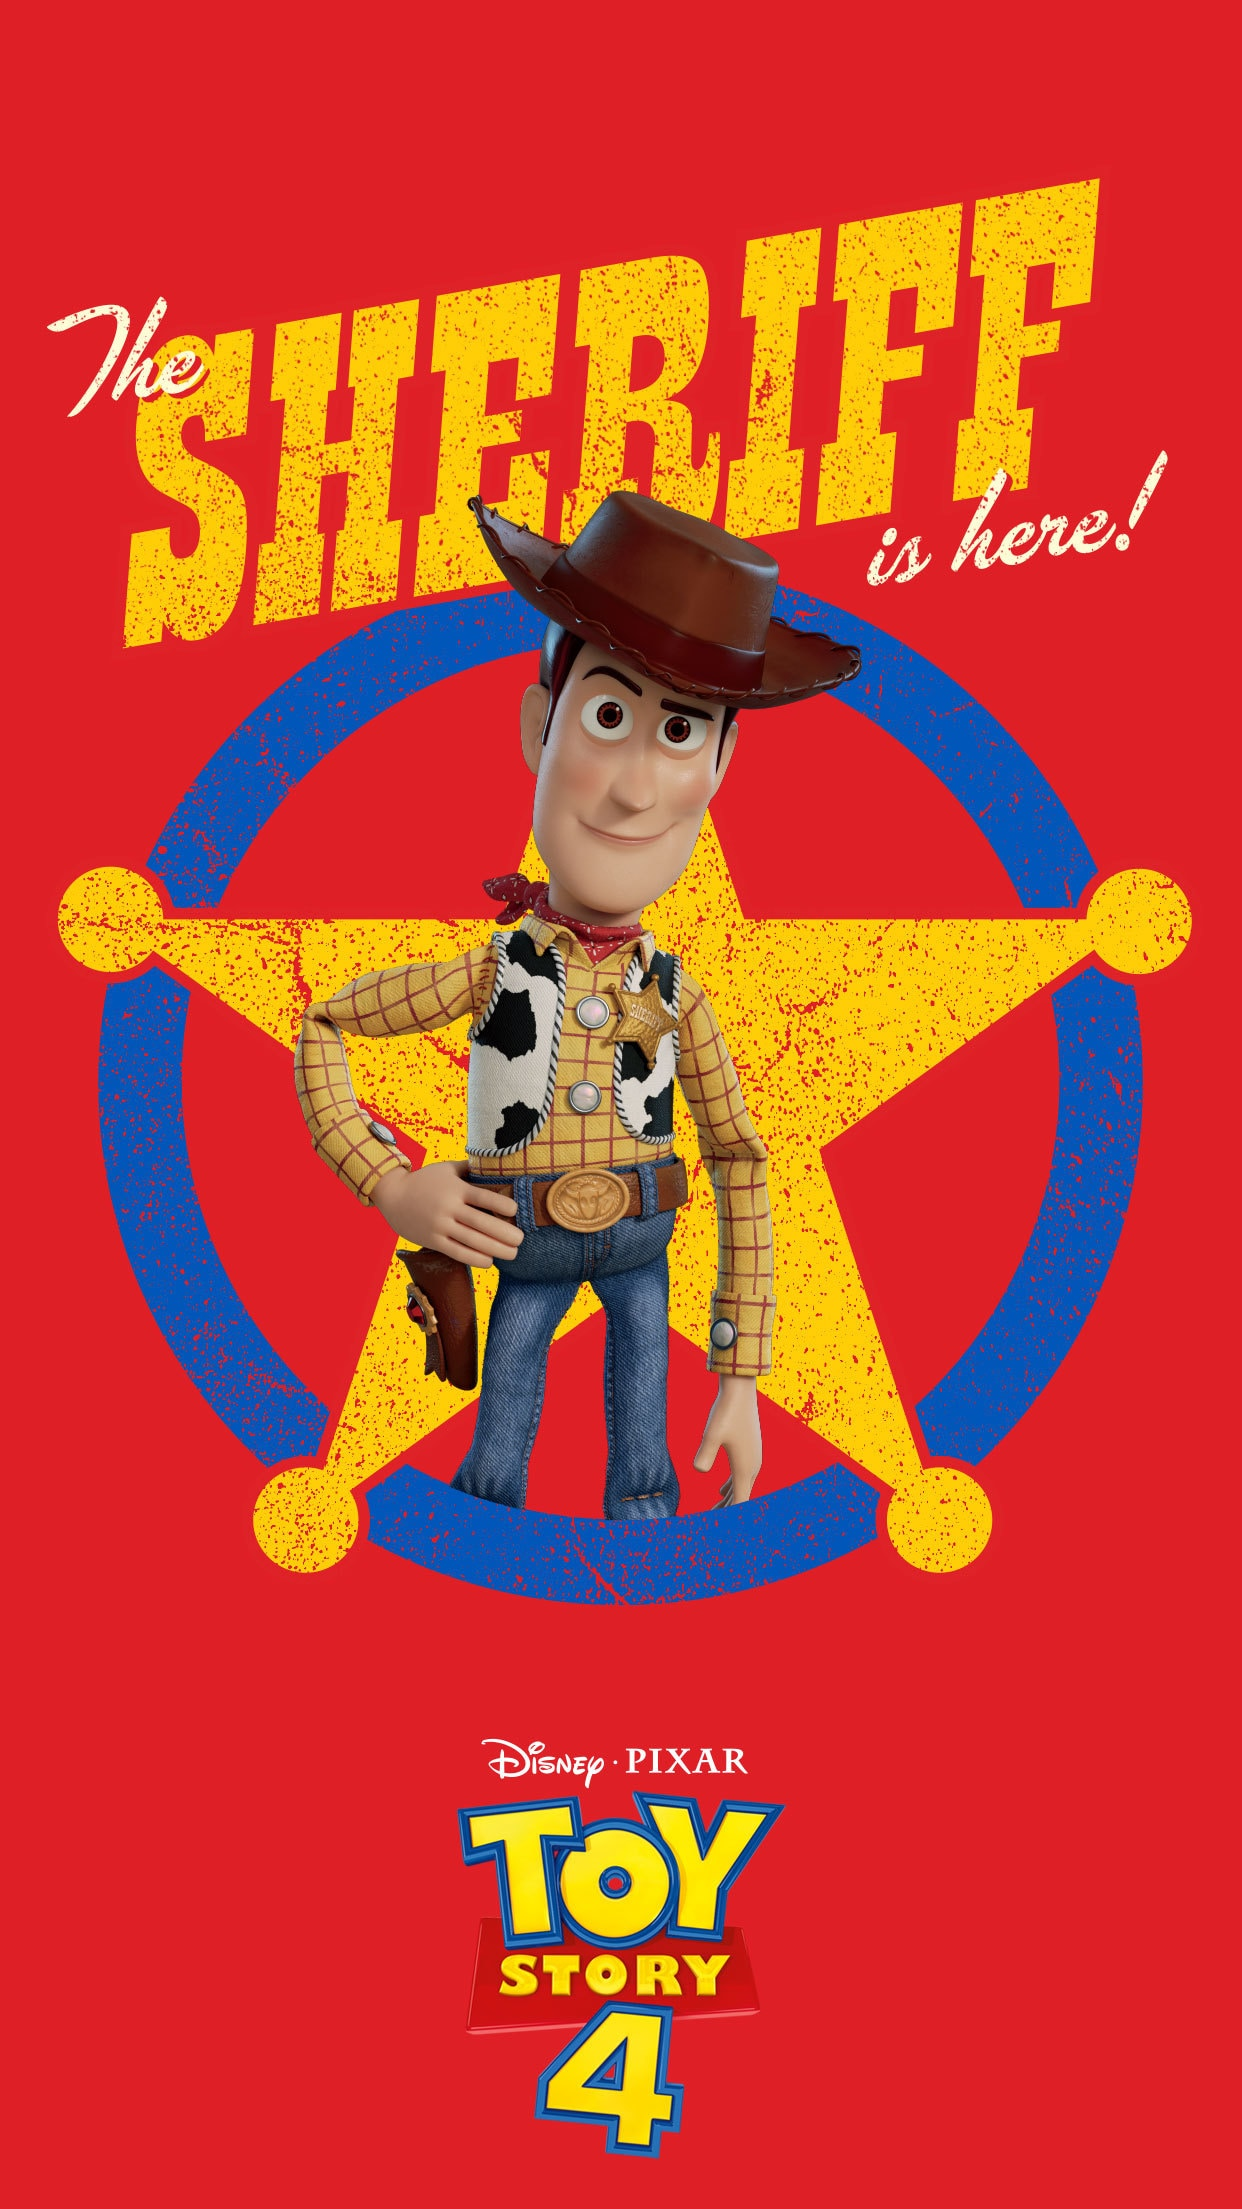 Go To Infinity And Beyond With These Disney and Pixar Toy Story 4 1242x2209